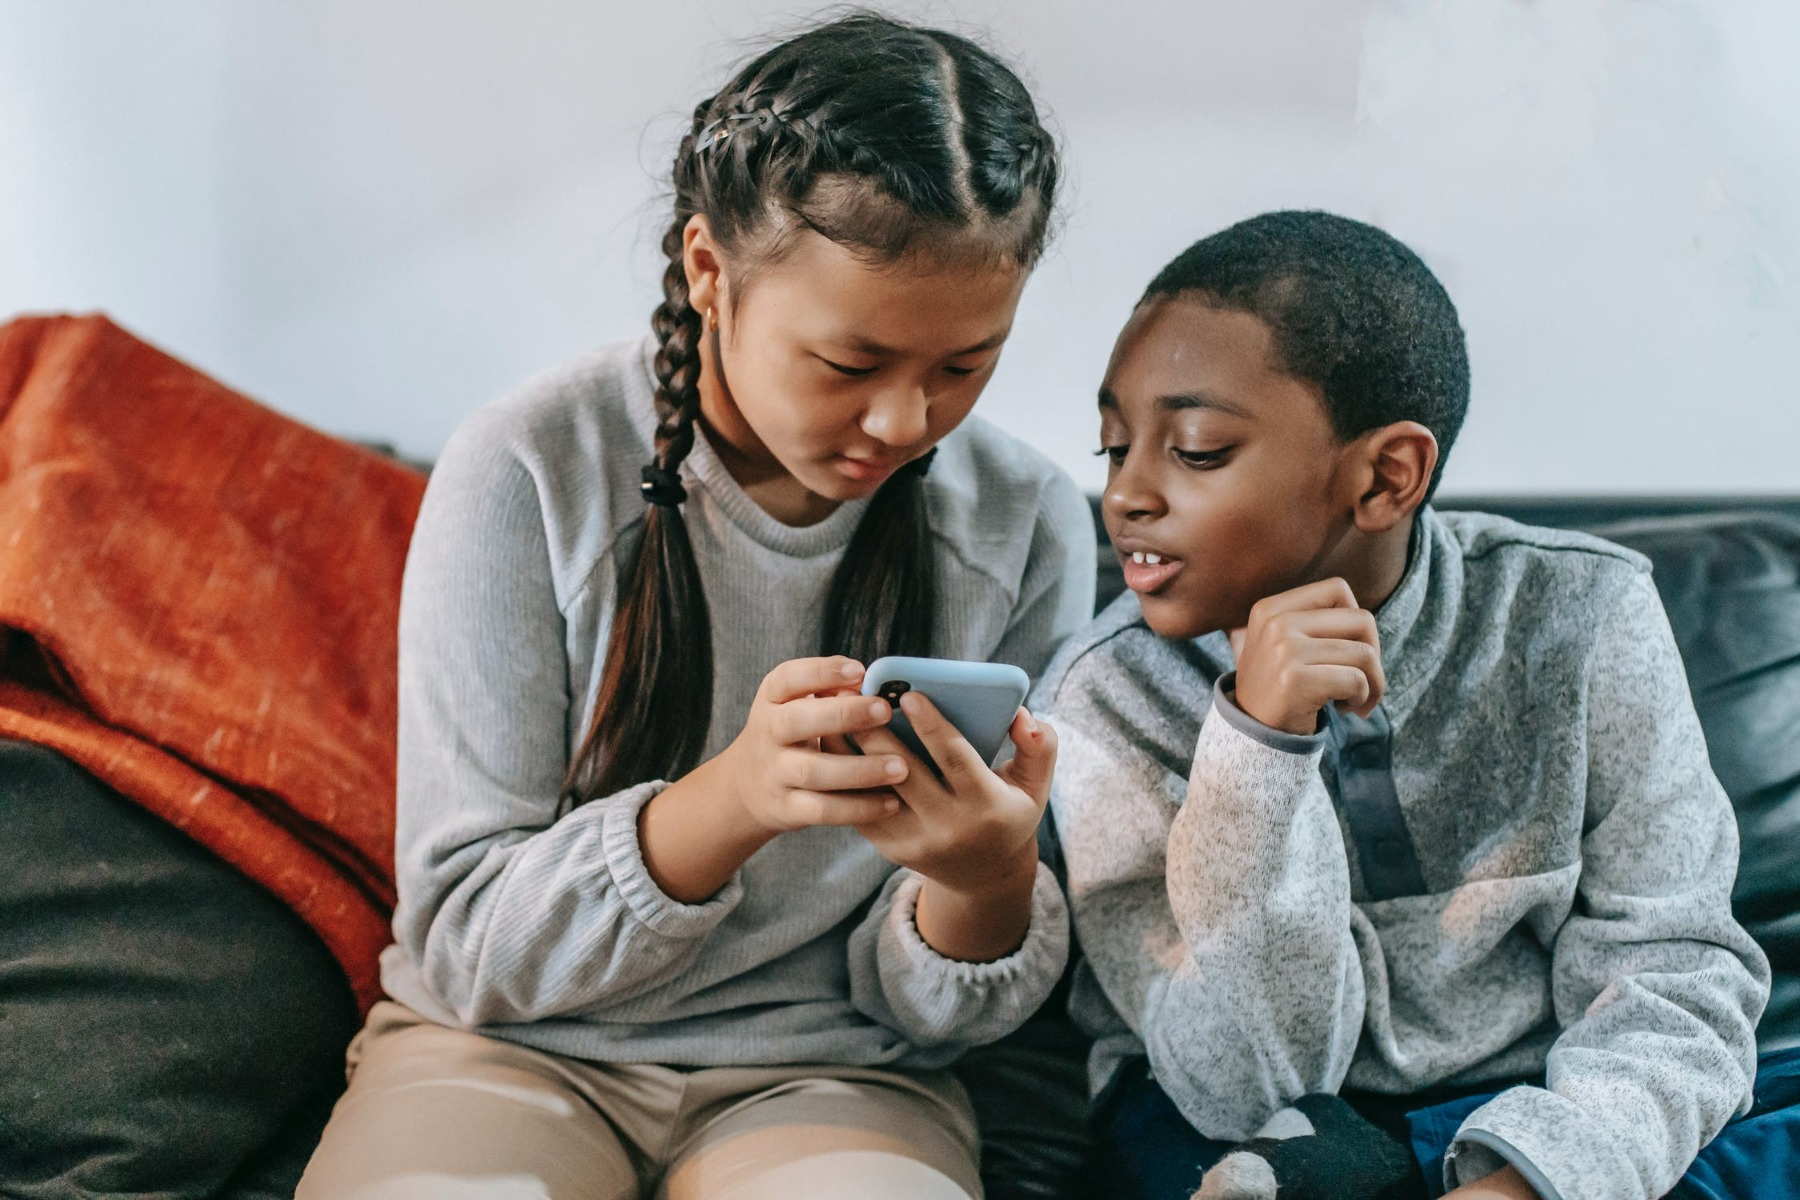 Two children looking at a phone